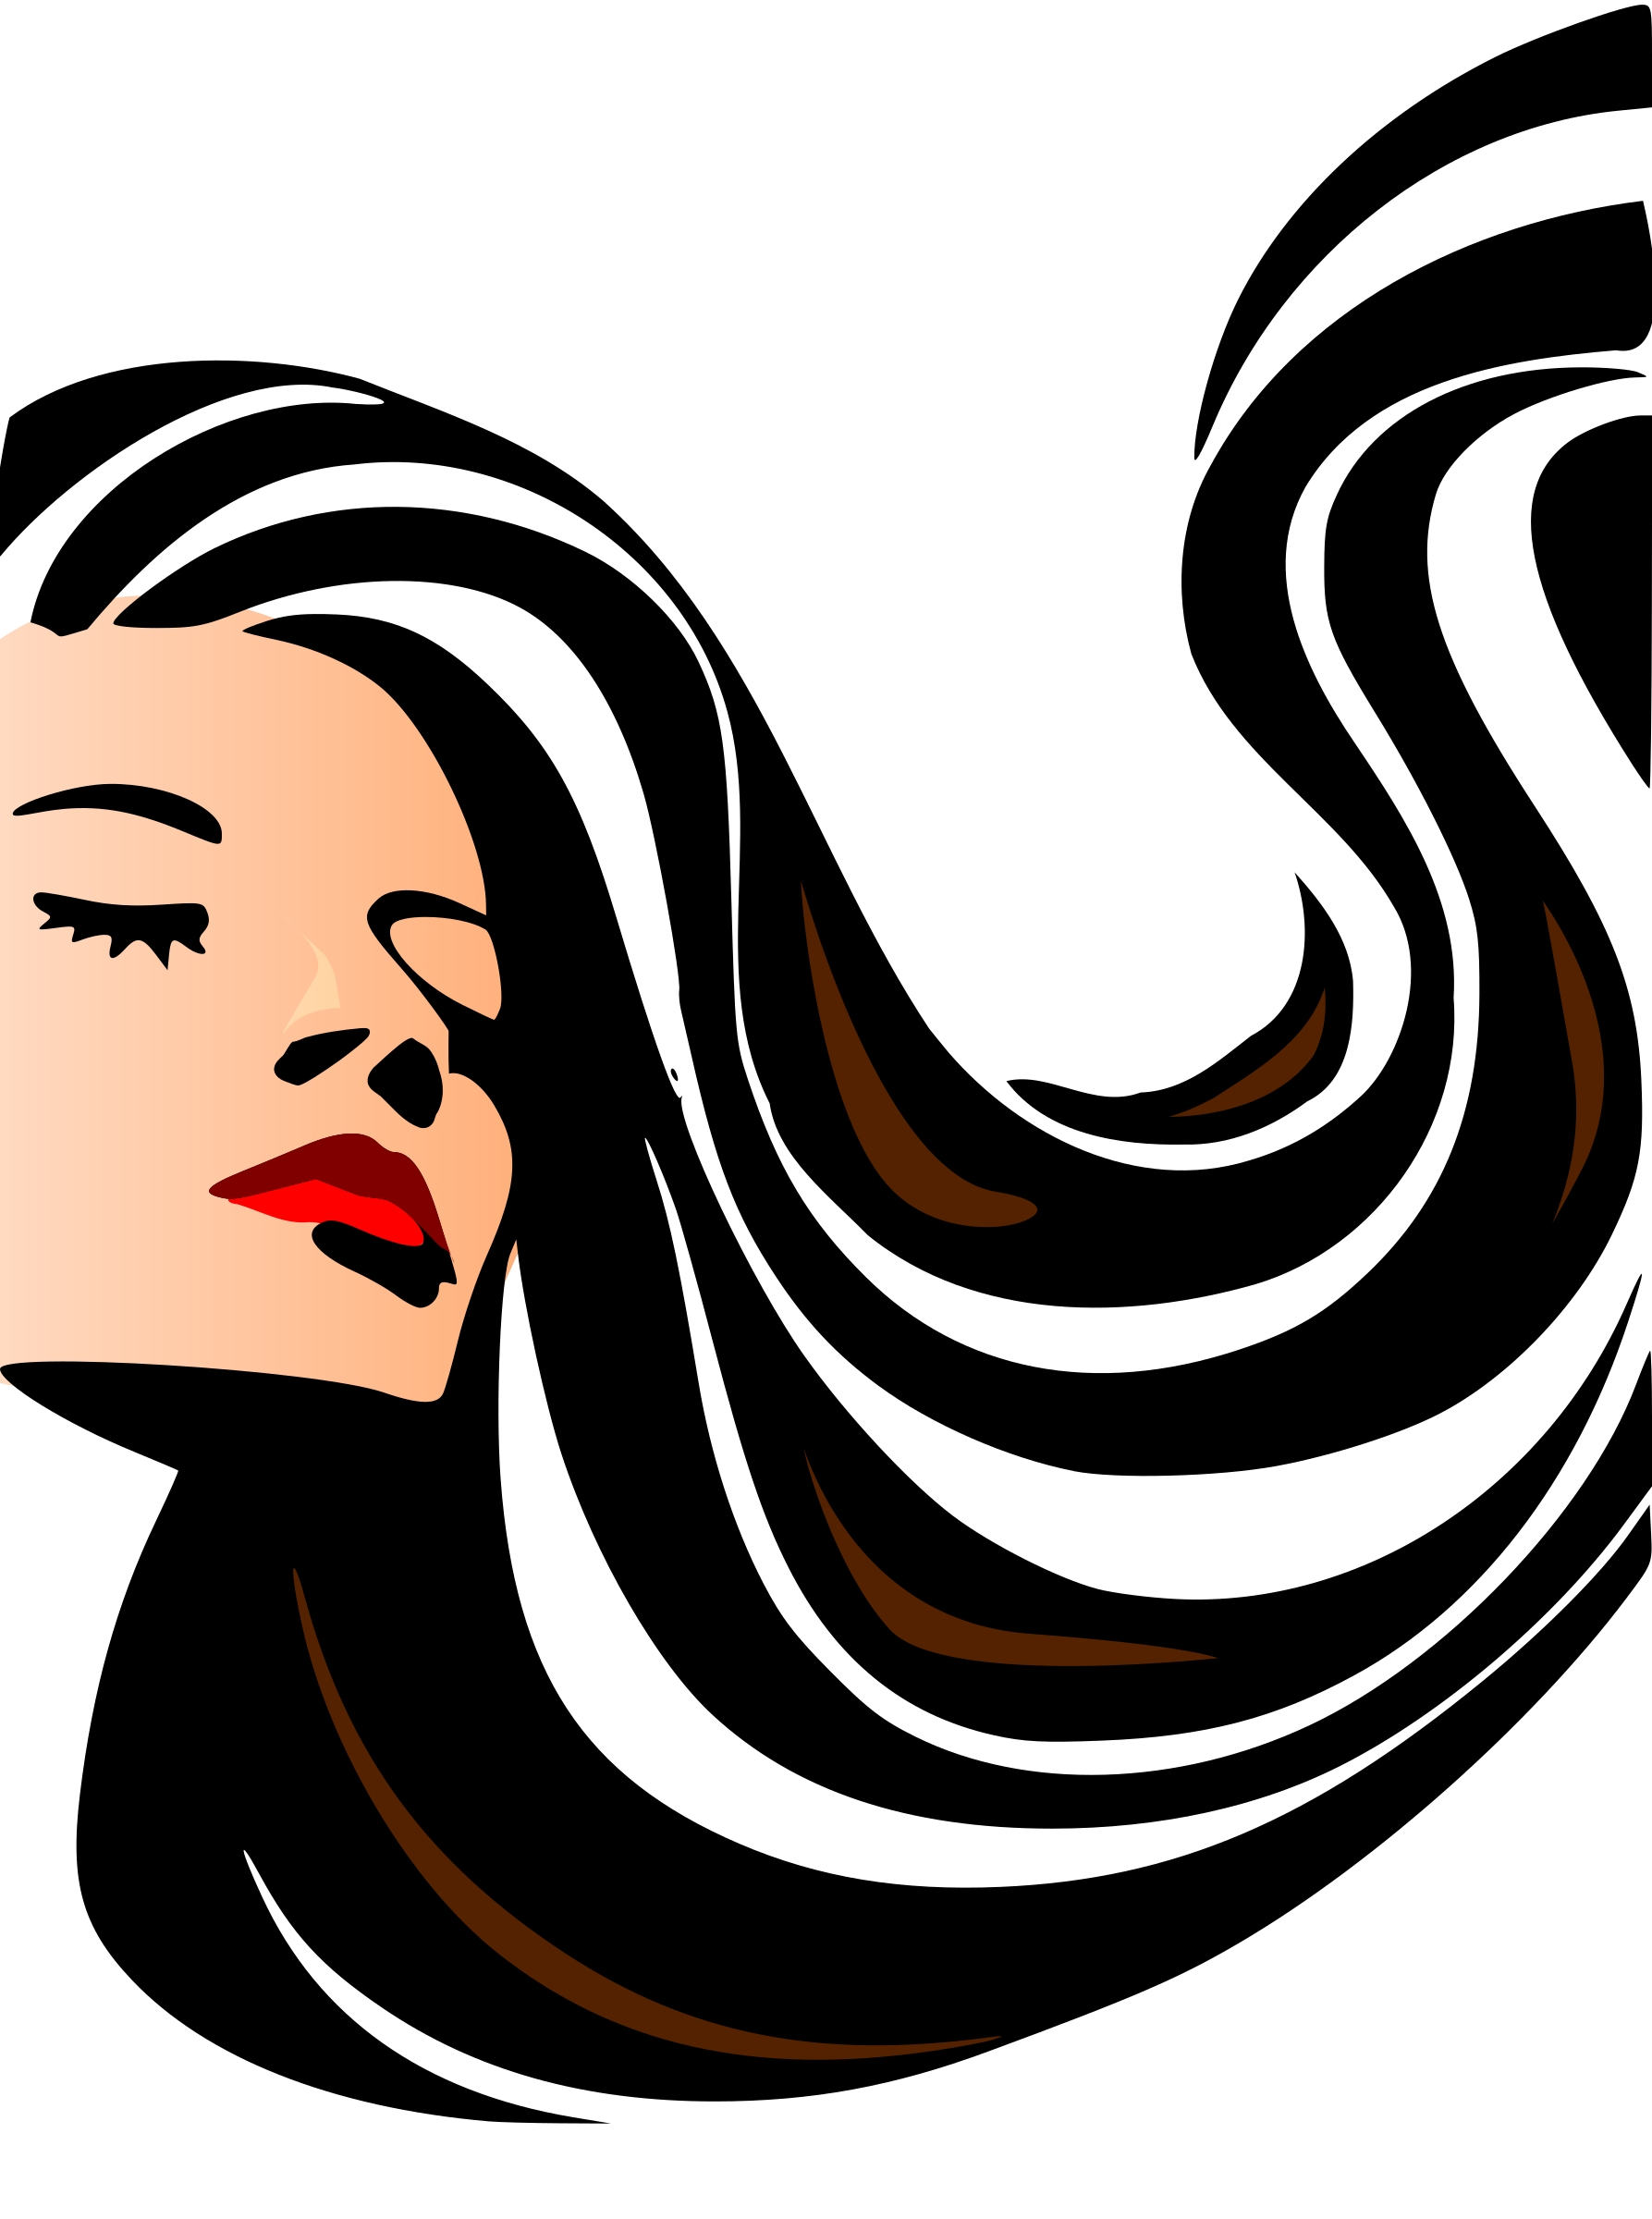 Woman Face Line Drawing Png : Clipart woman